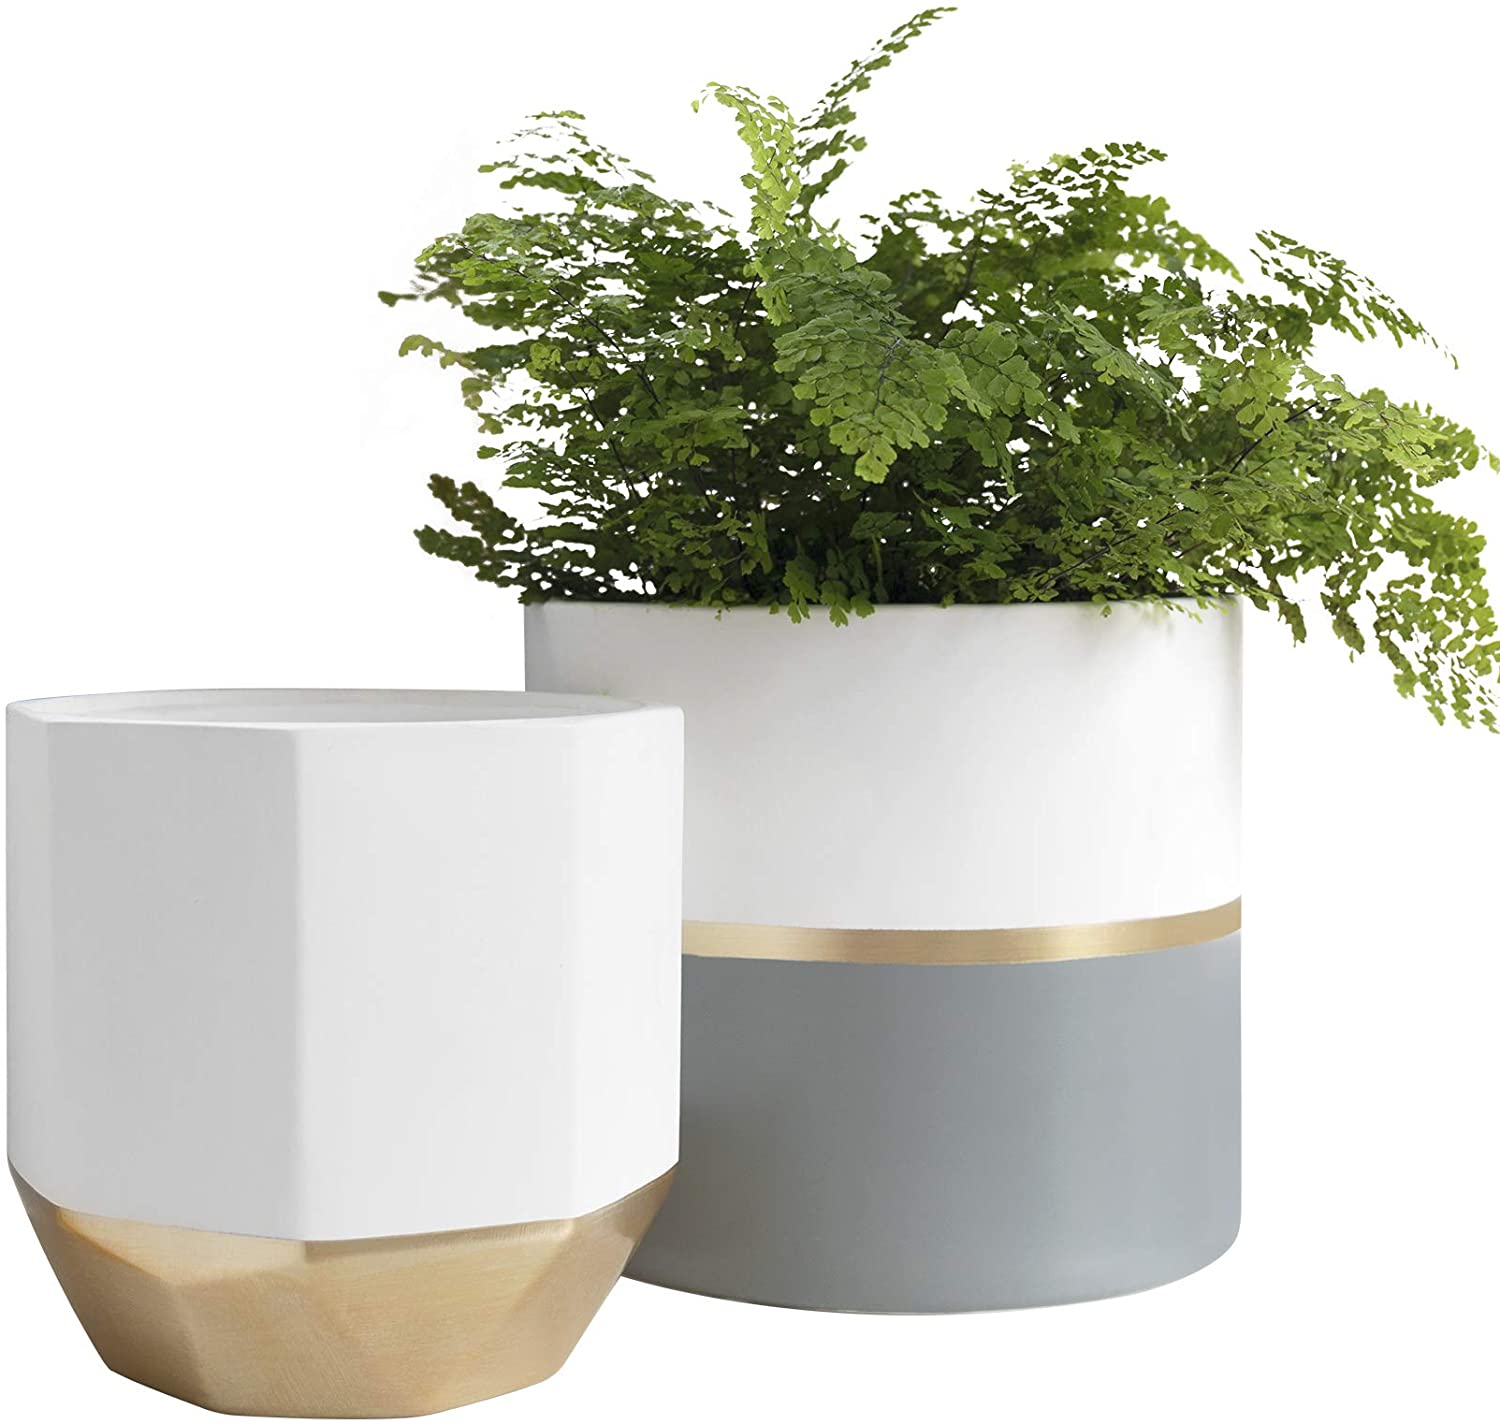 Large White Ceramic Plant Pots - Garden Planters 10 Inch Pack 2 Indoor Flower Pots, Plant Containers with Gold and Grey Detailing